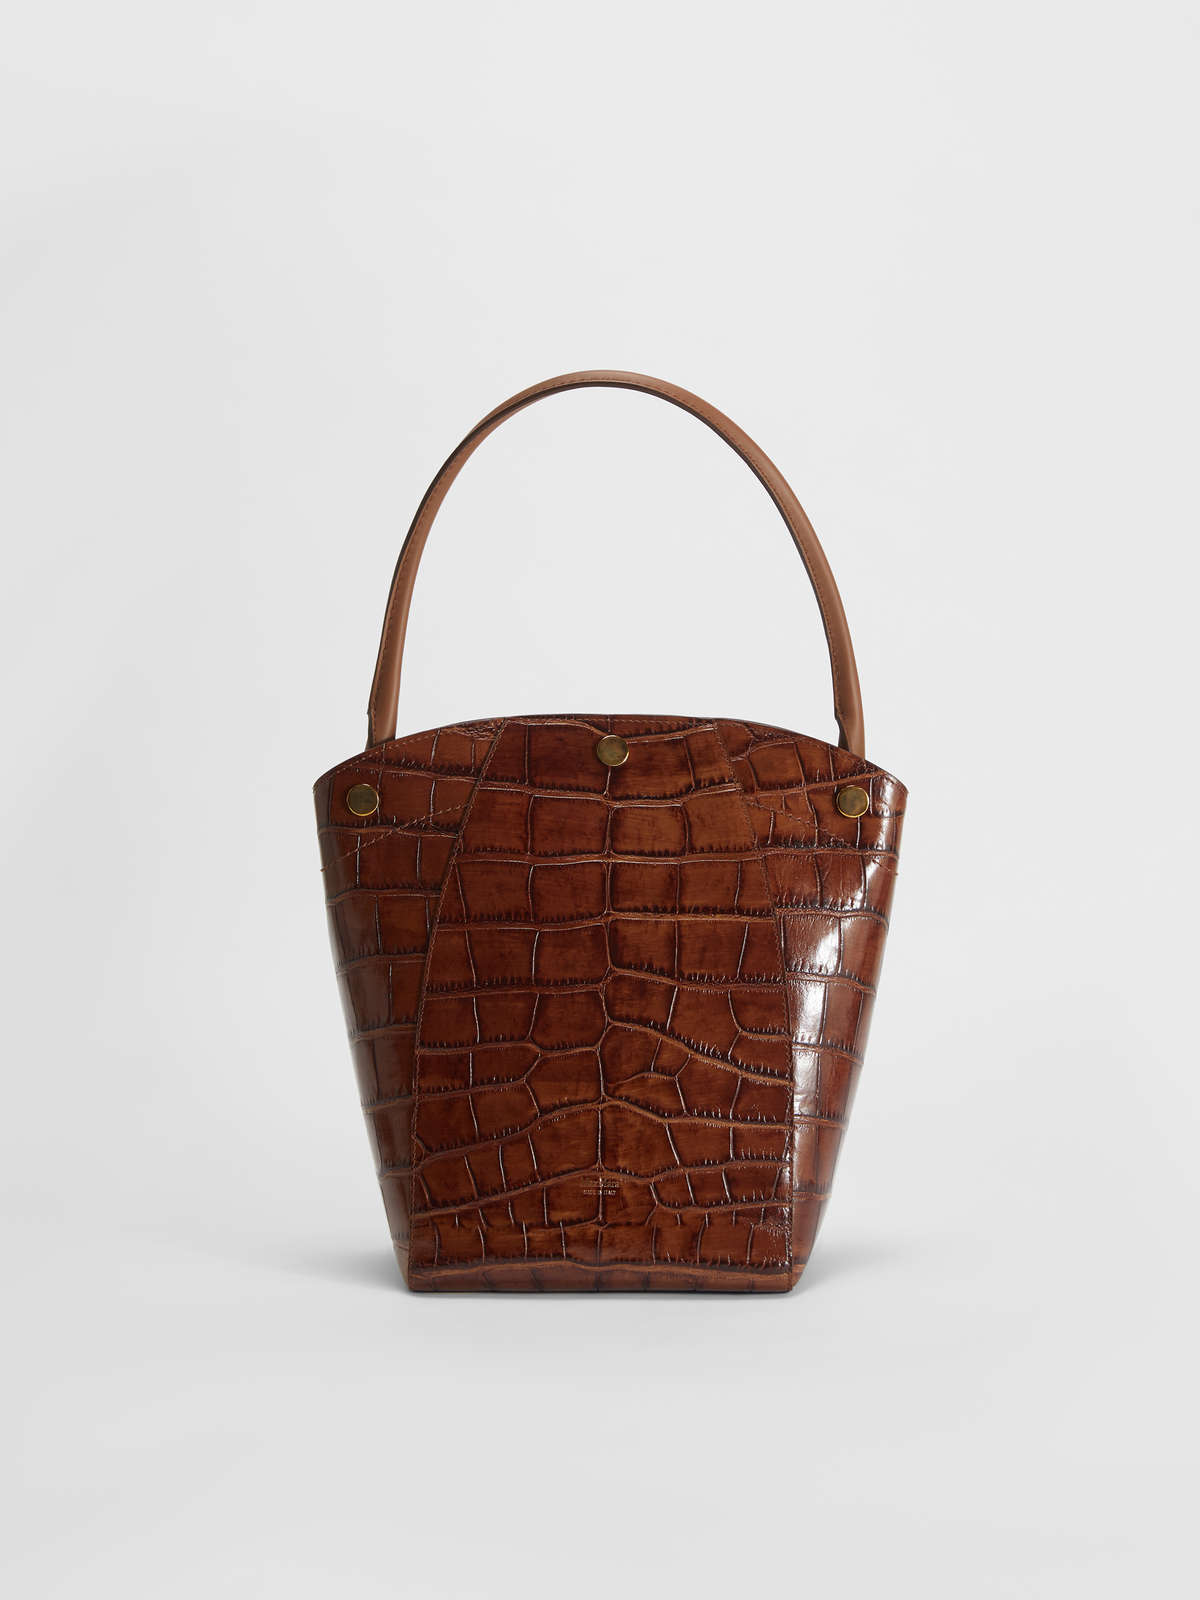 Crocodile print leather hobo bag - Max Mara